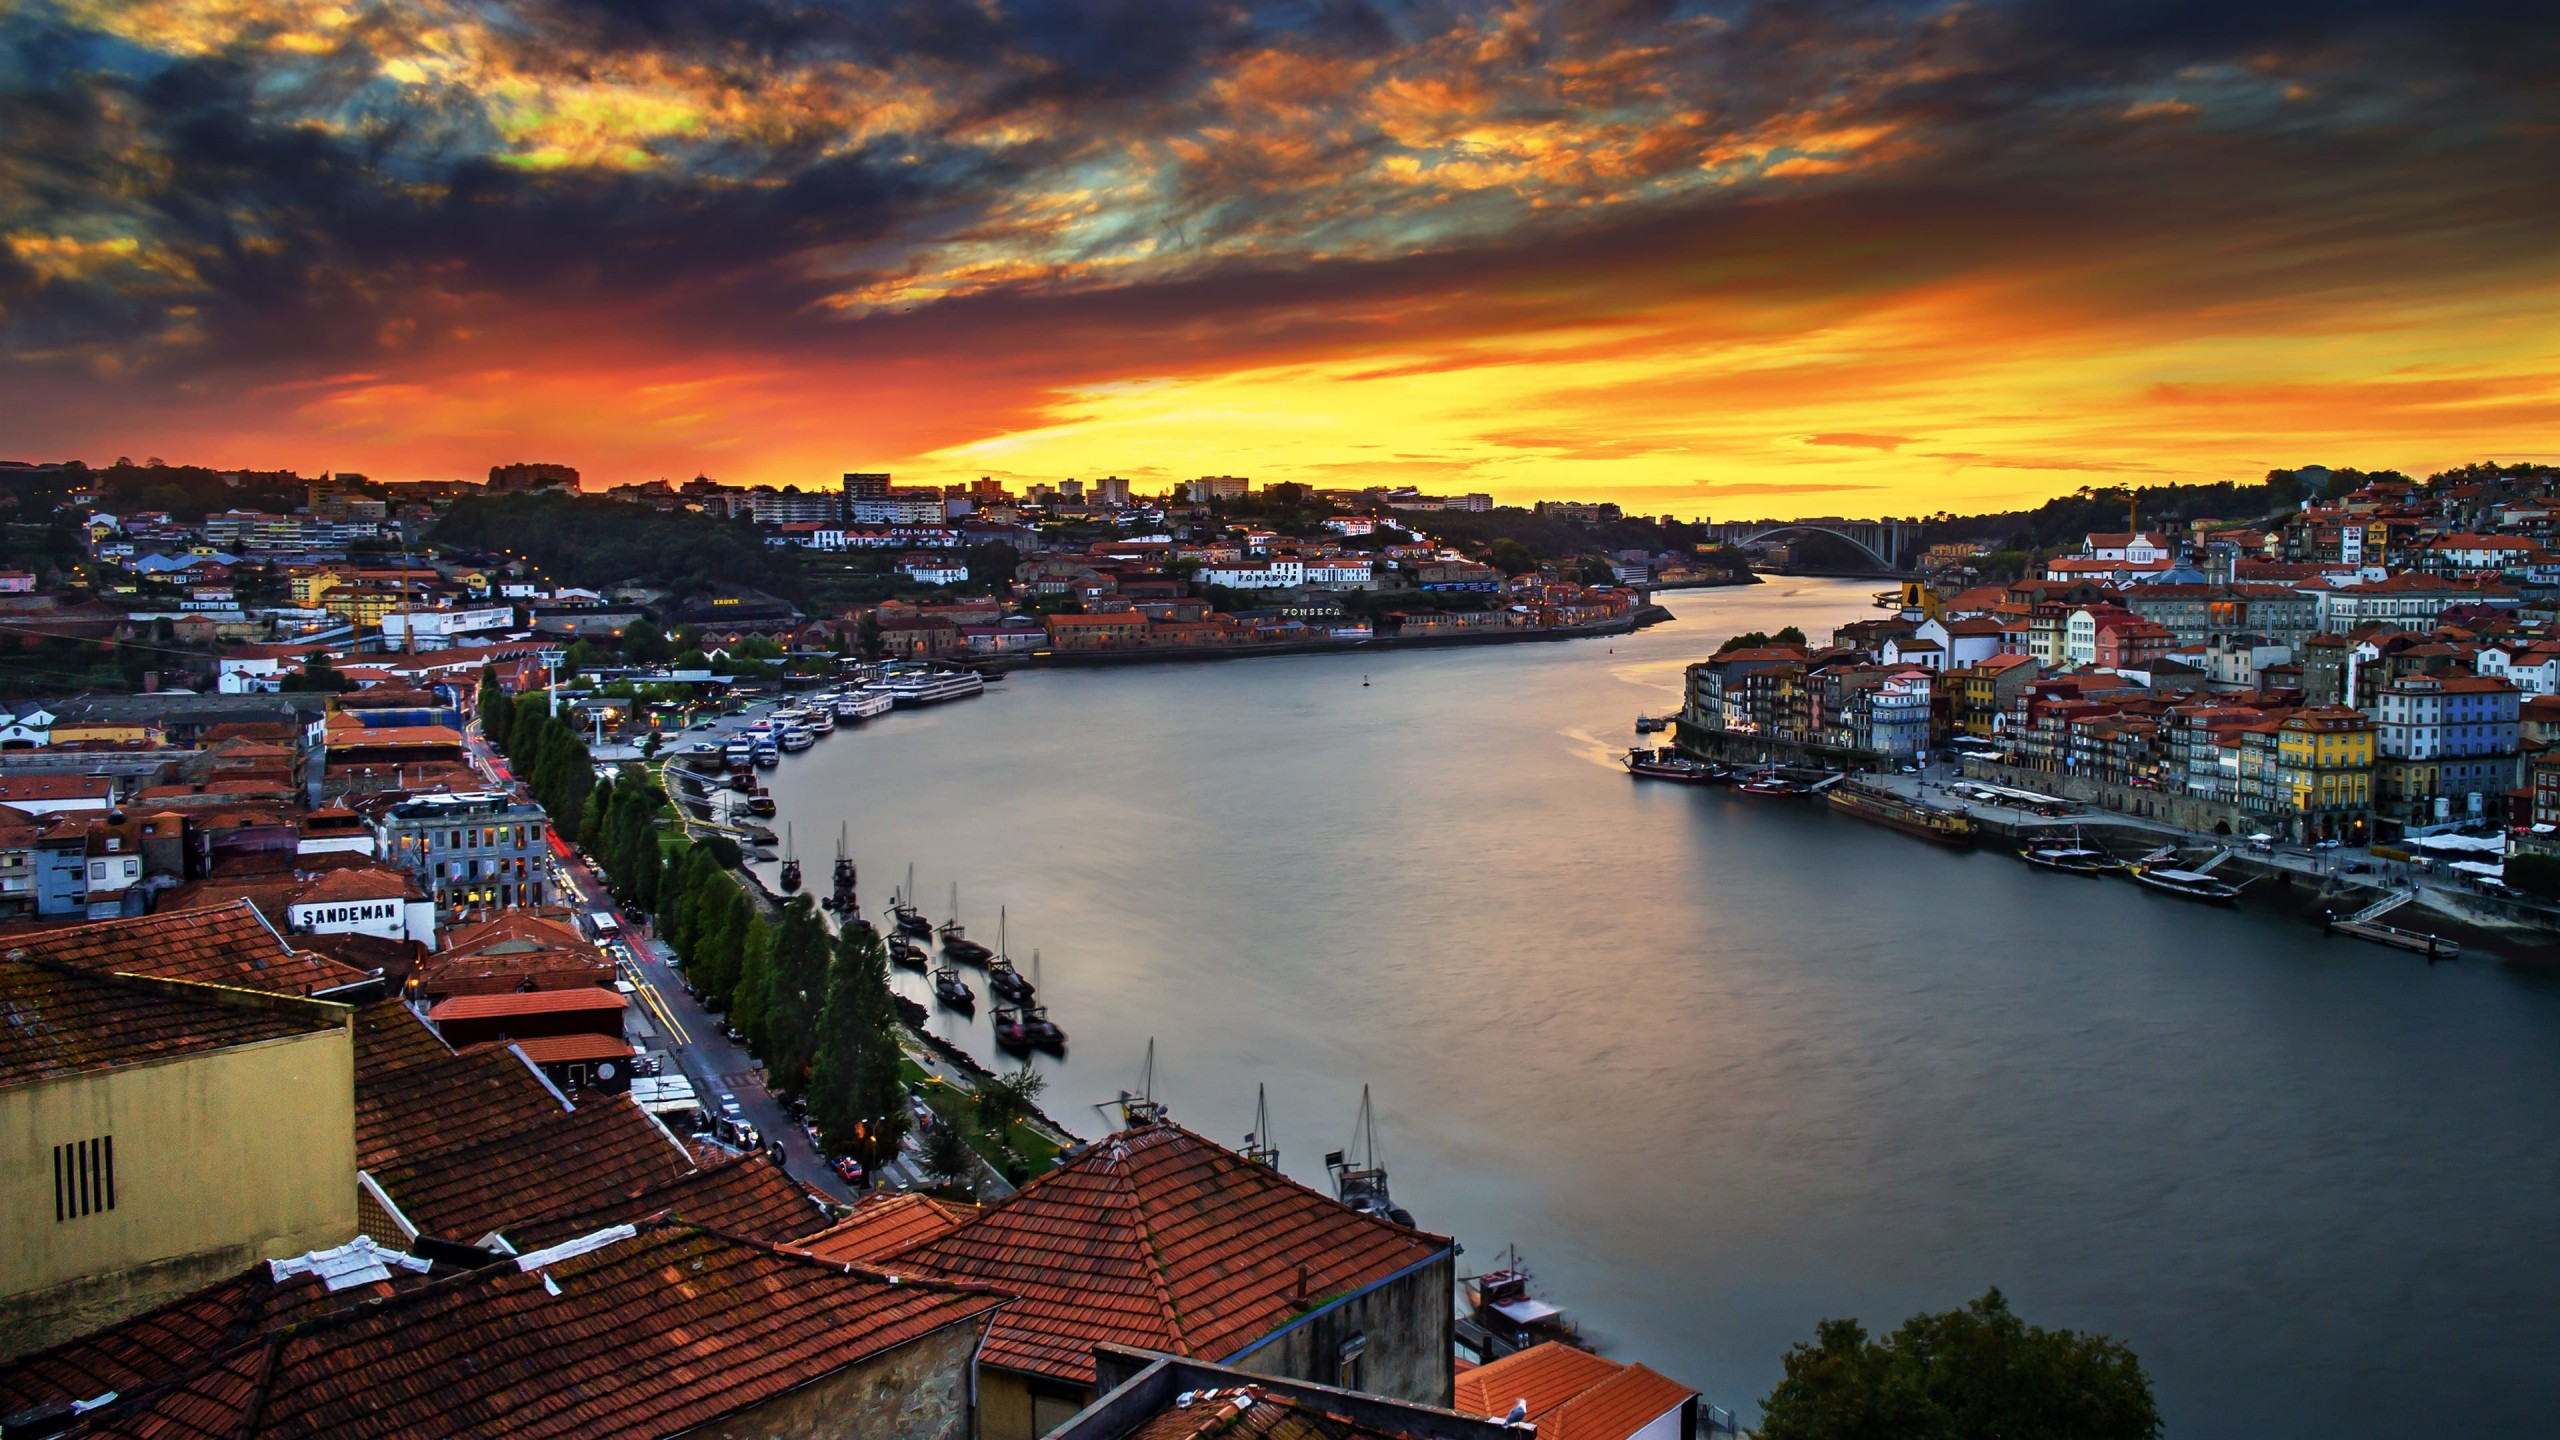 Enchanting Porto Wallpaper for Social Media YouTube Channel Art